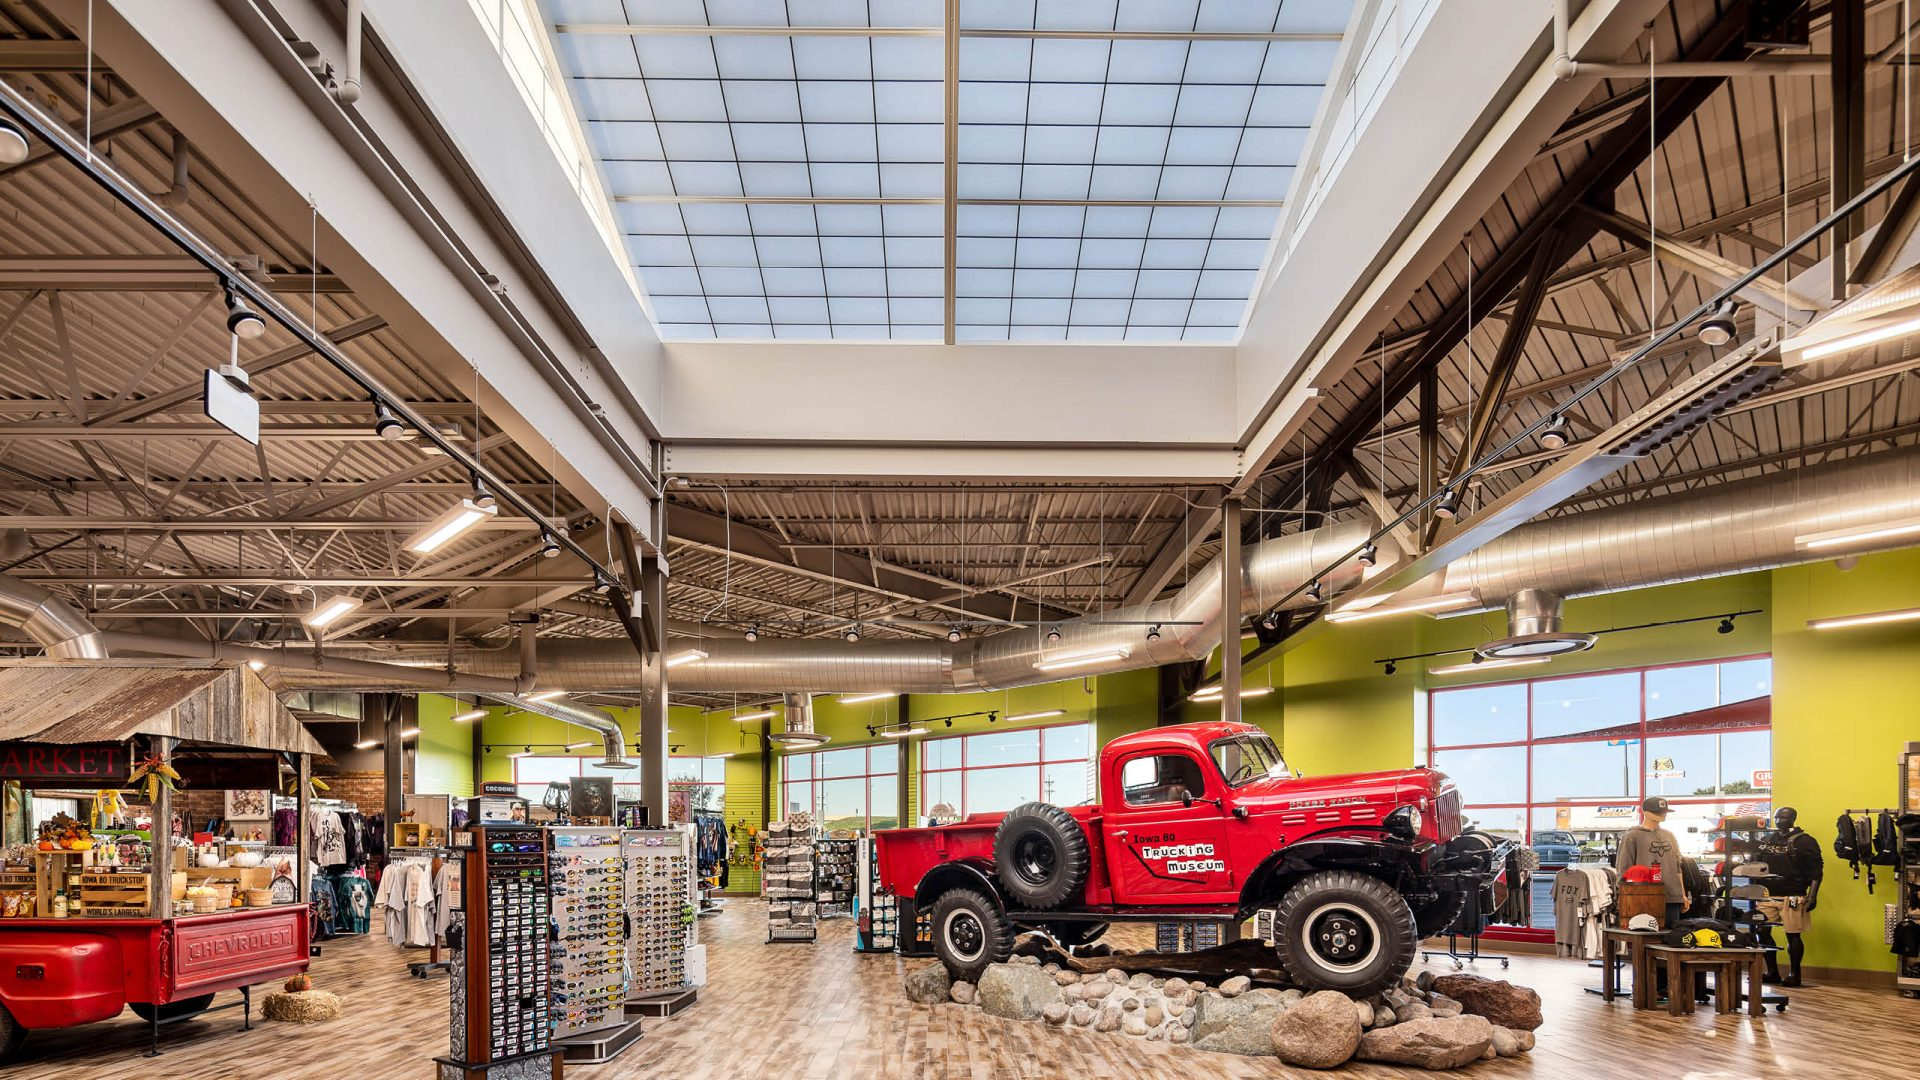 Skylight and truck in retail shop